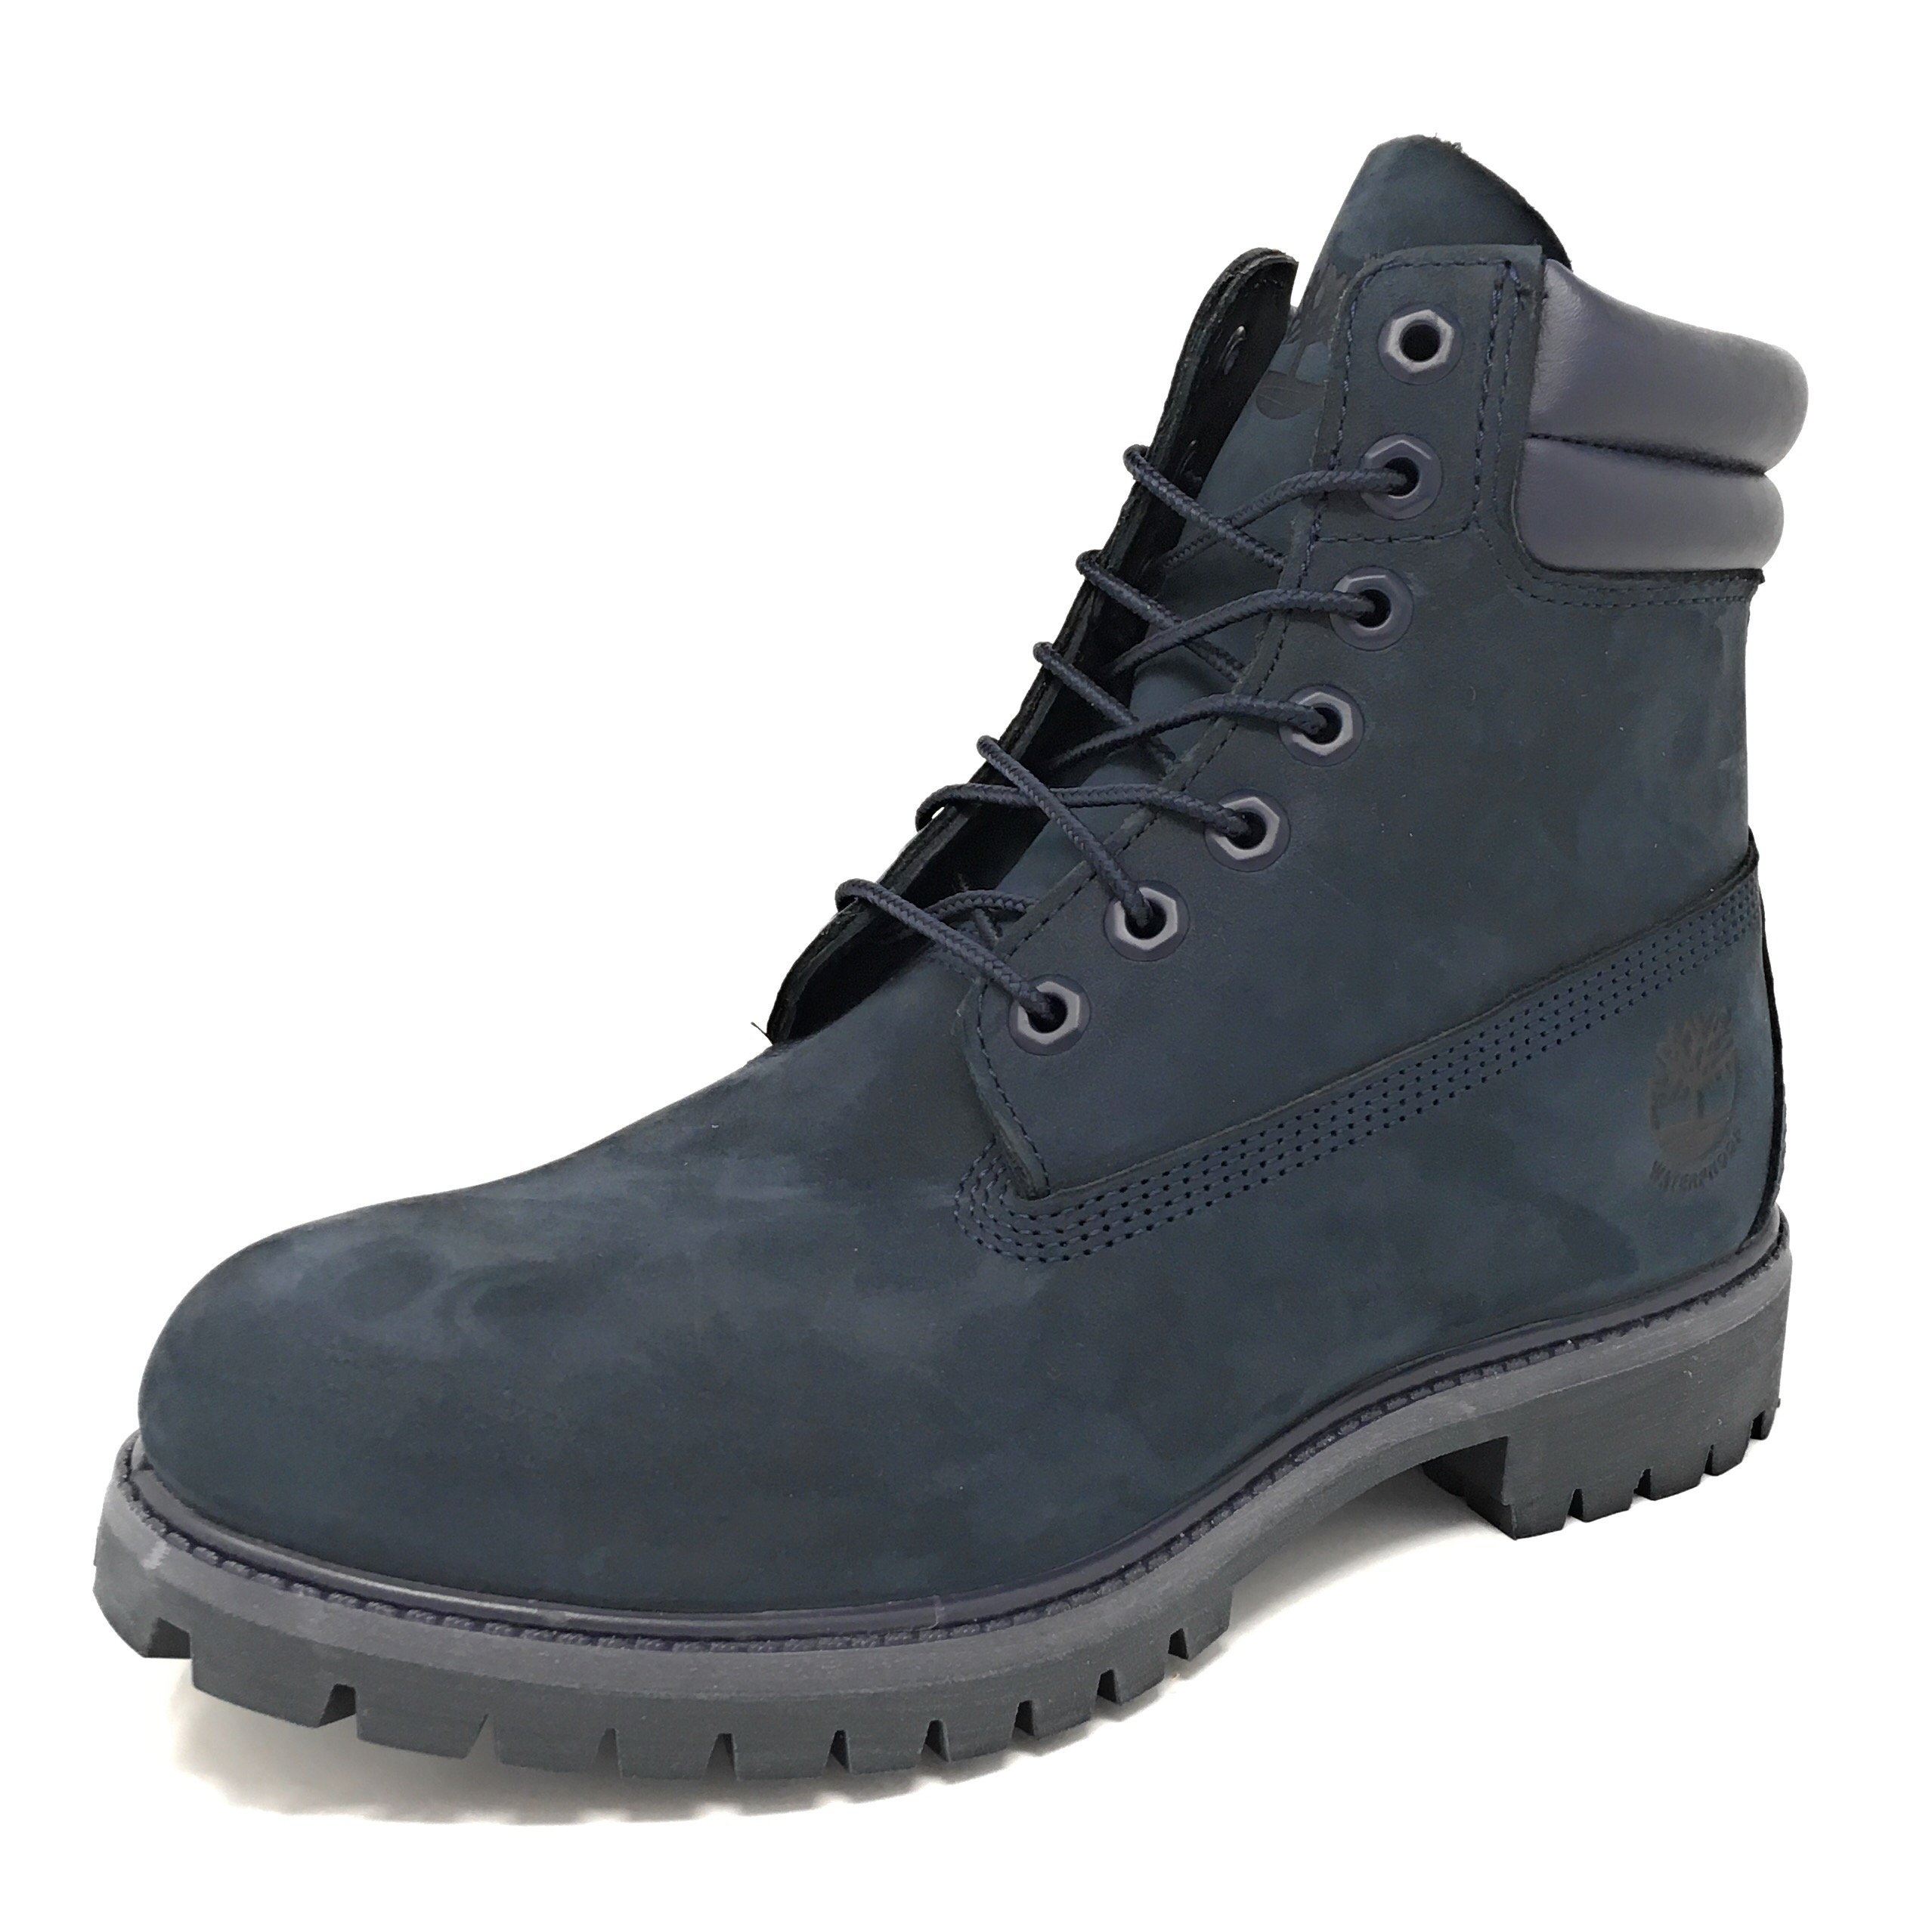 Timberland 6 in Bootsメンズブーツ